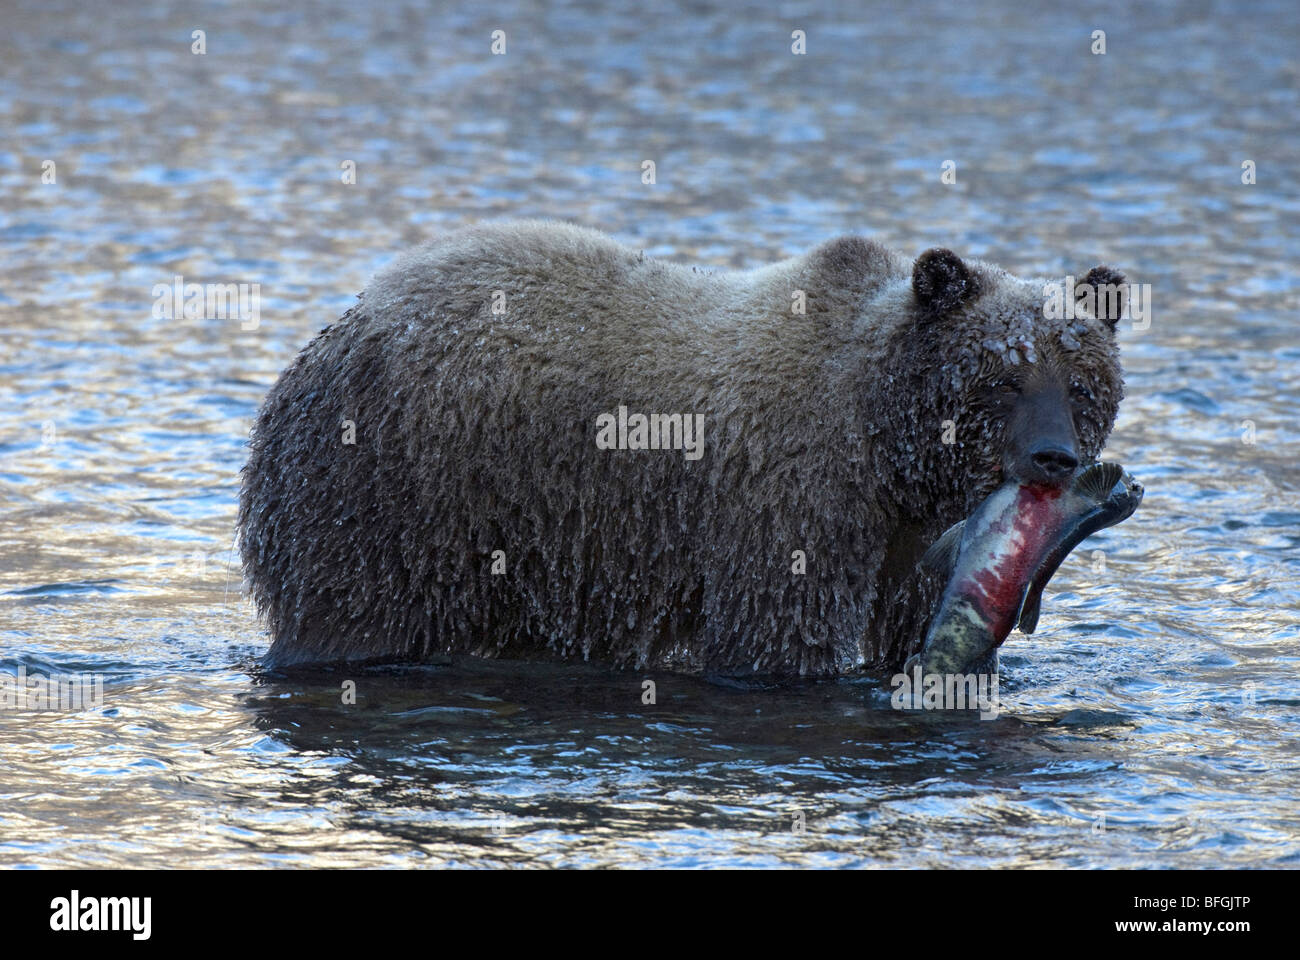 Wild Grizzly bear carrying chum or dog salmon in early winter in Fishing Branch River.  Fishing Branch Ni'iinlii'njik - Stock Image